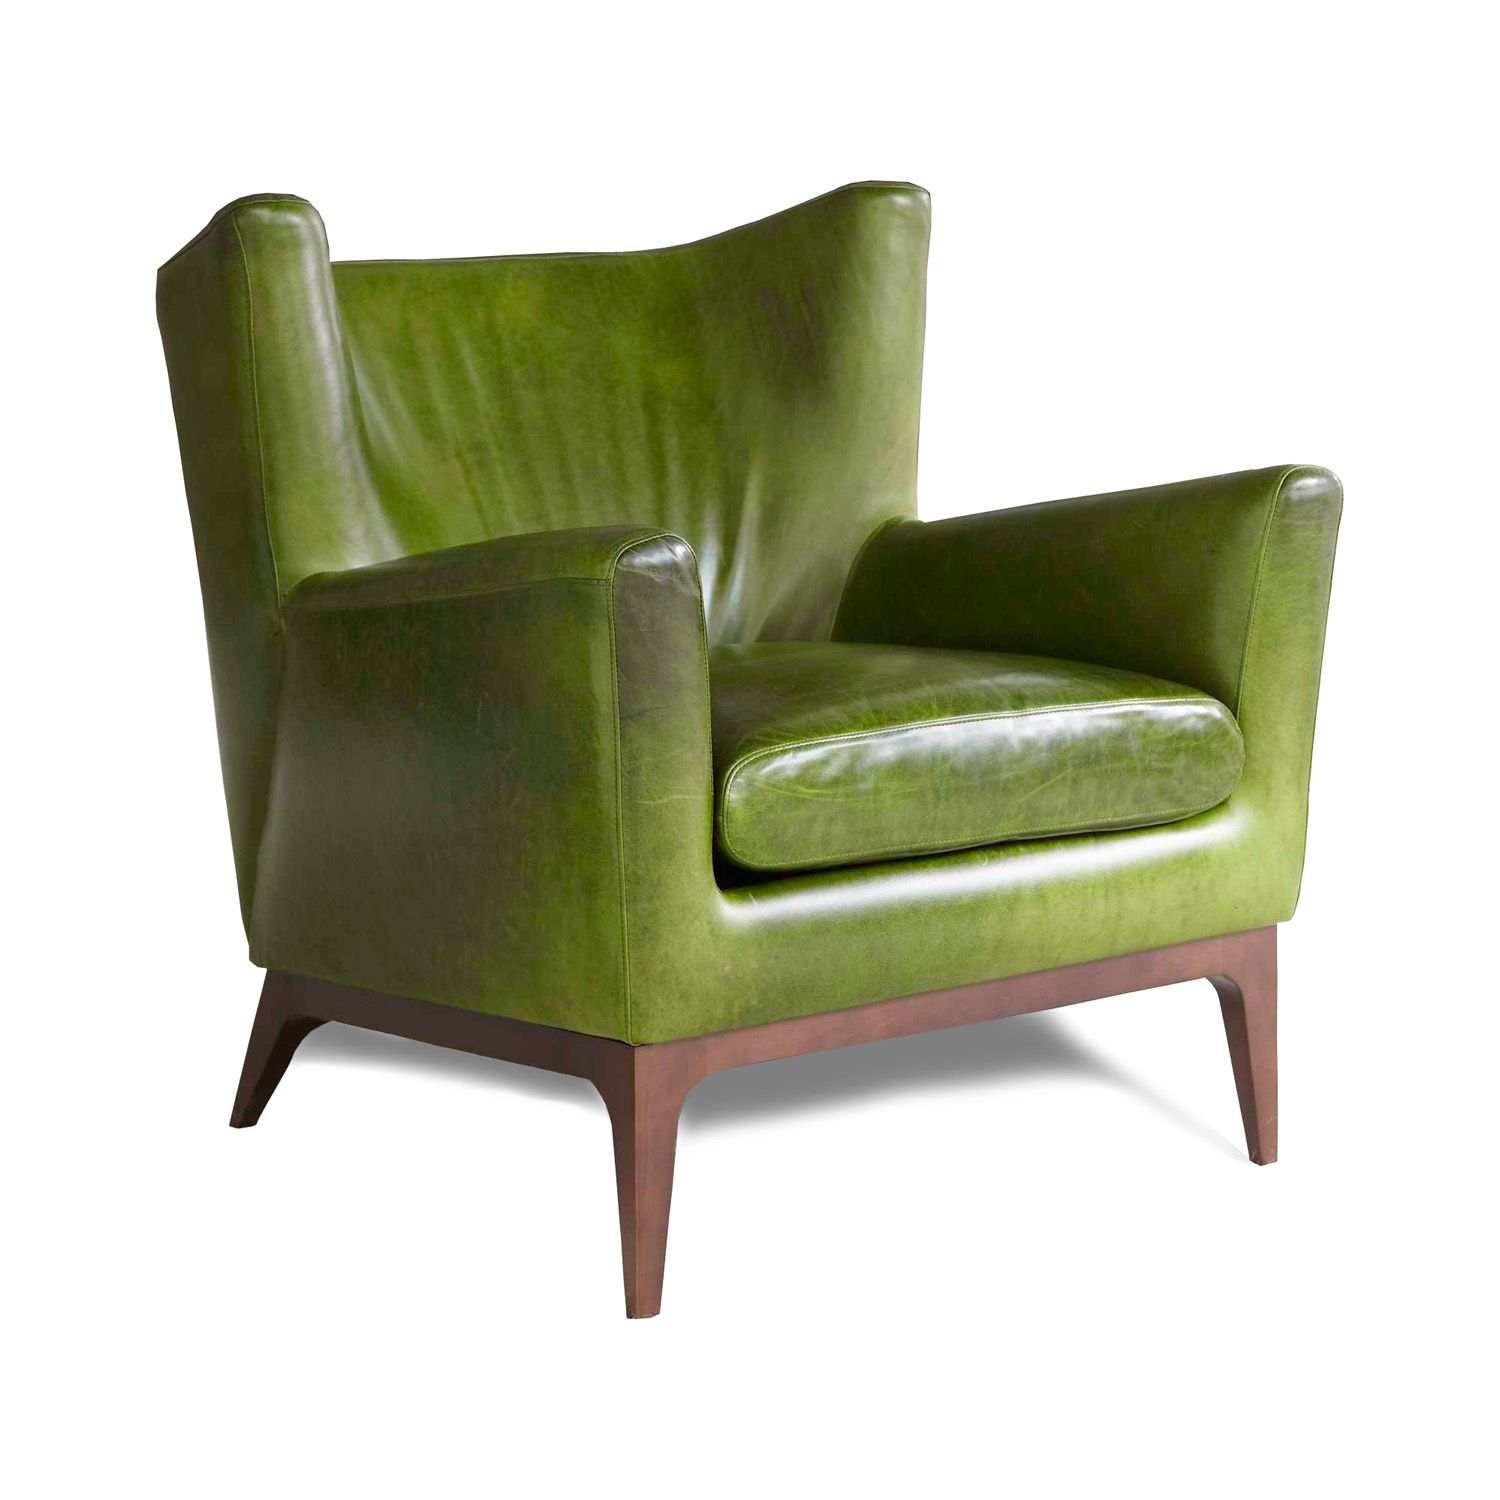 Attractive Cole Chair From American Leather Available In Red Fabric At Richard Neel  Interiors In Tulsa, OK.